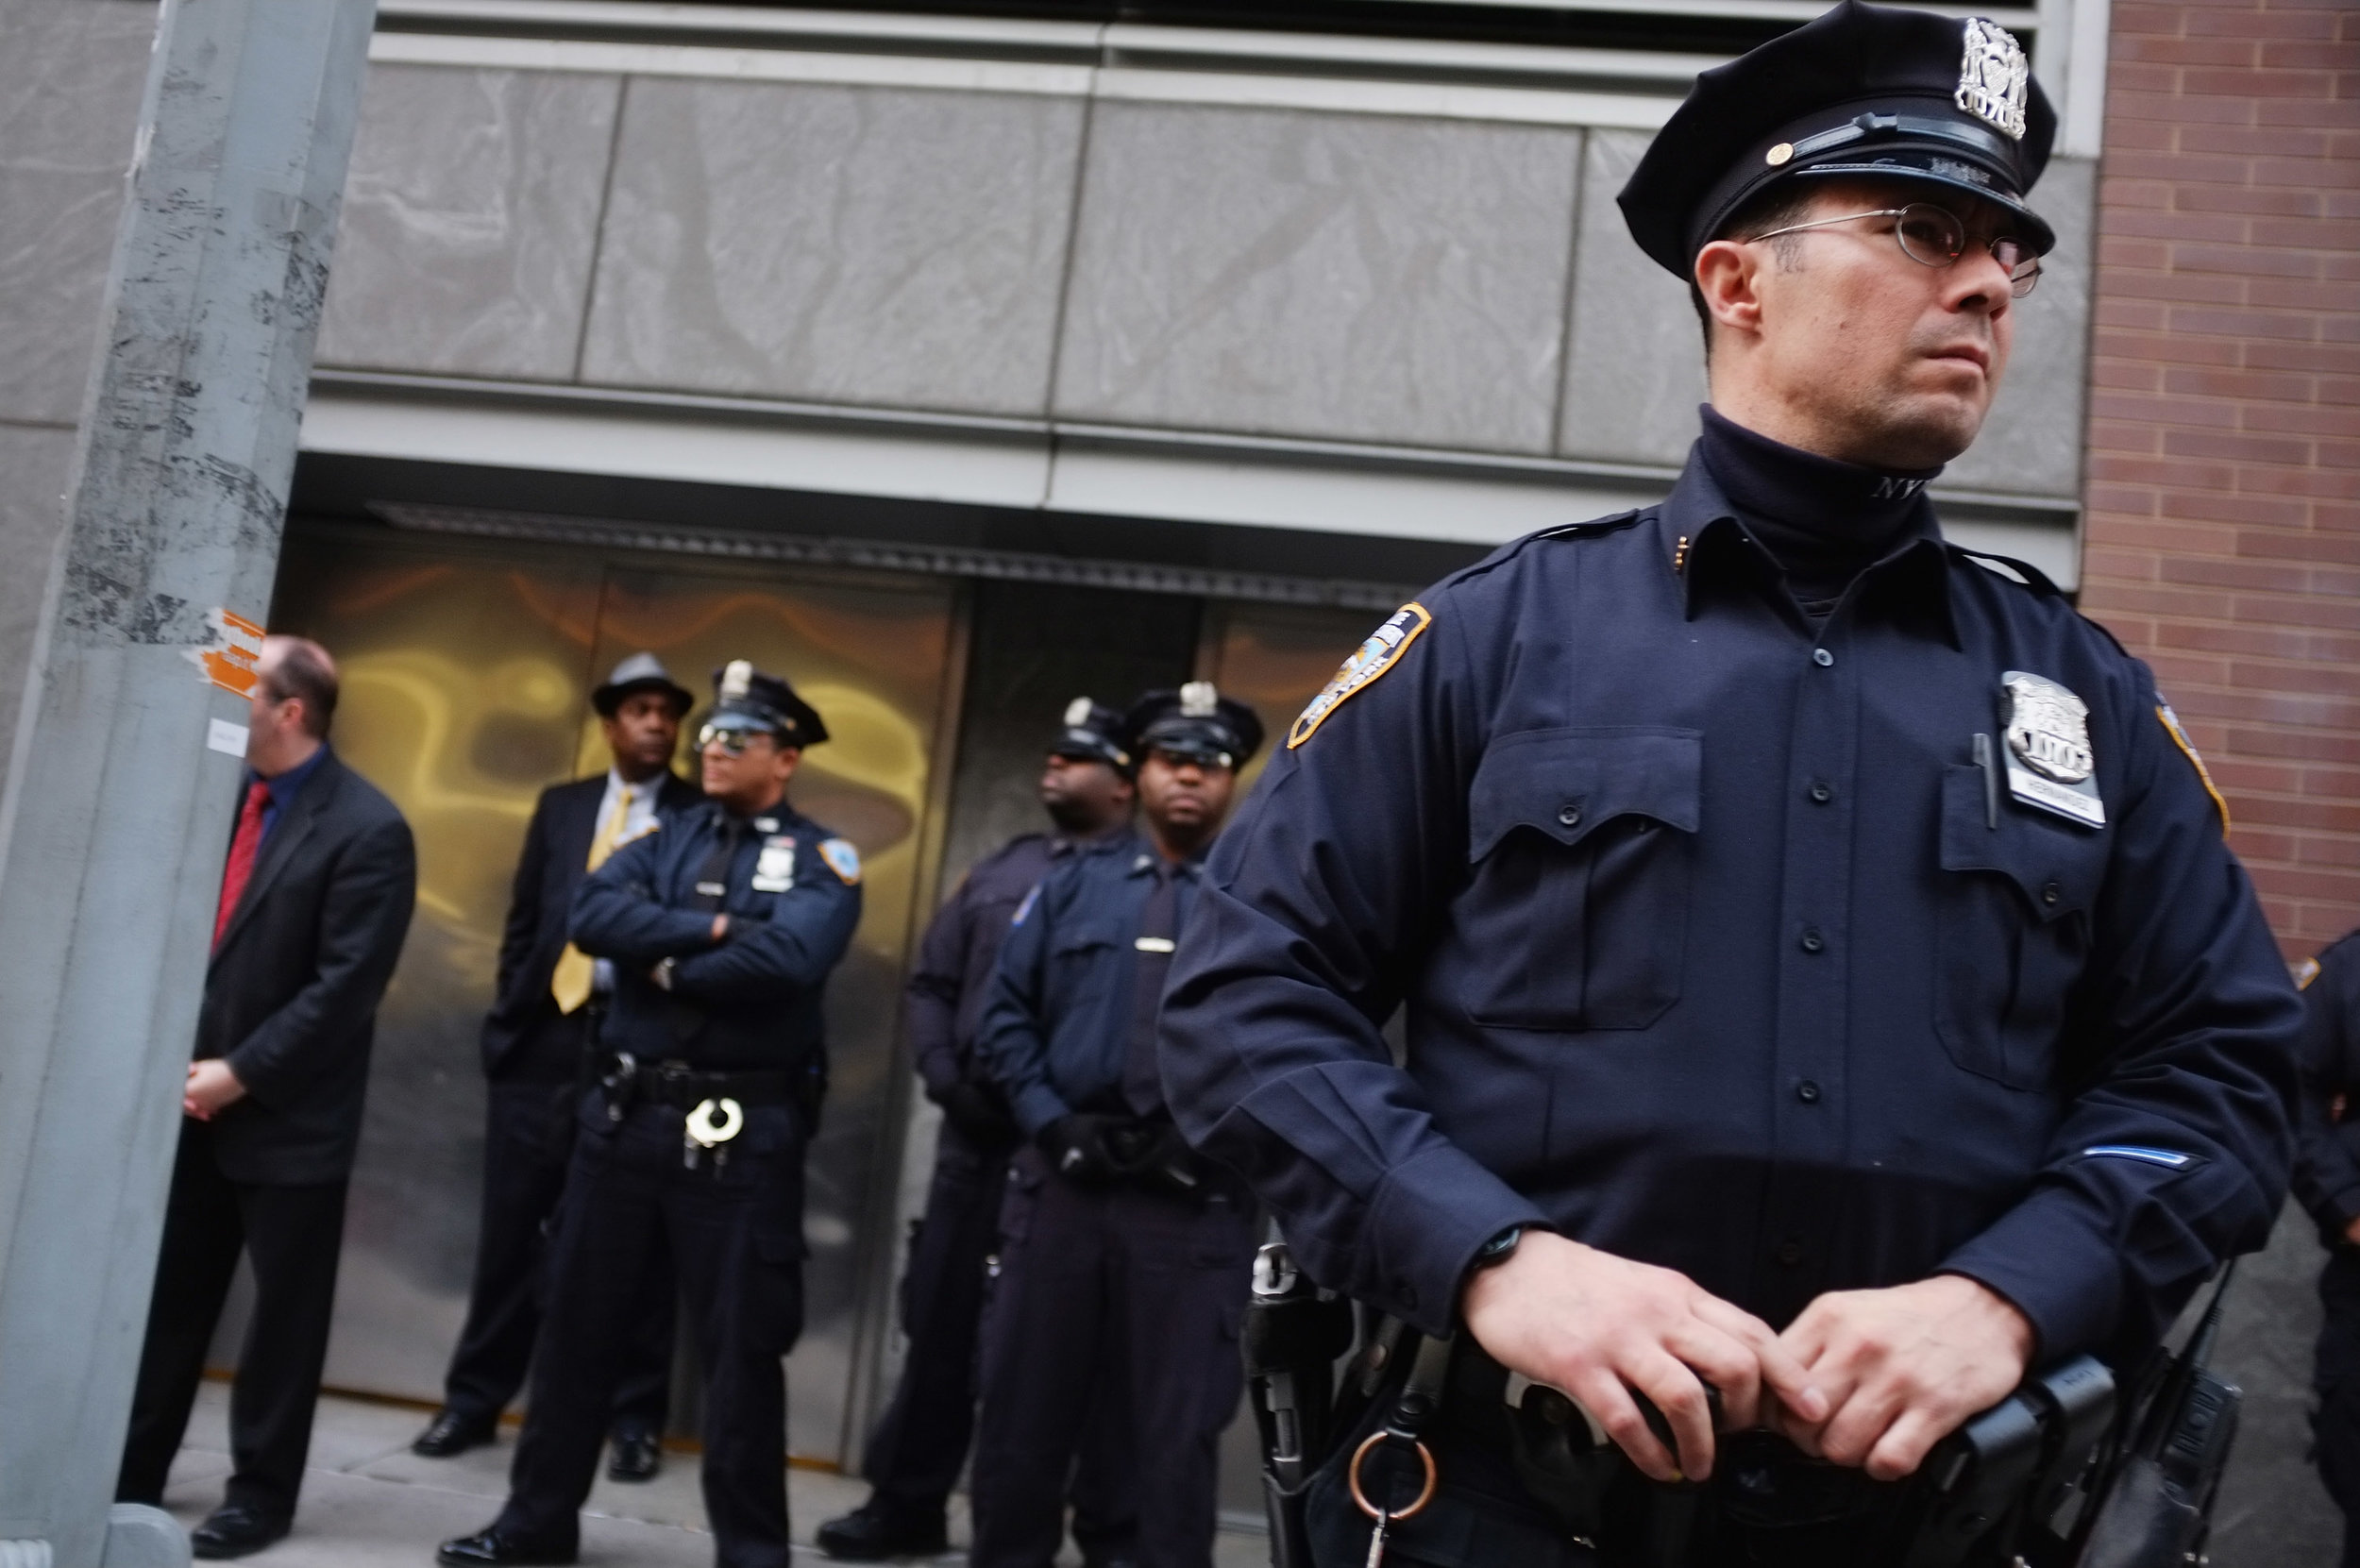 Daily pressures for NYPD officers include productivity targets, court settlements and DA investigations.